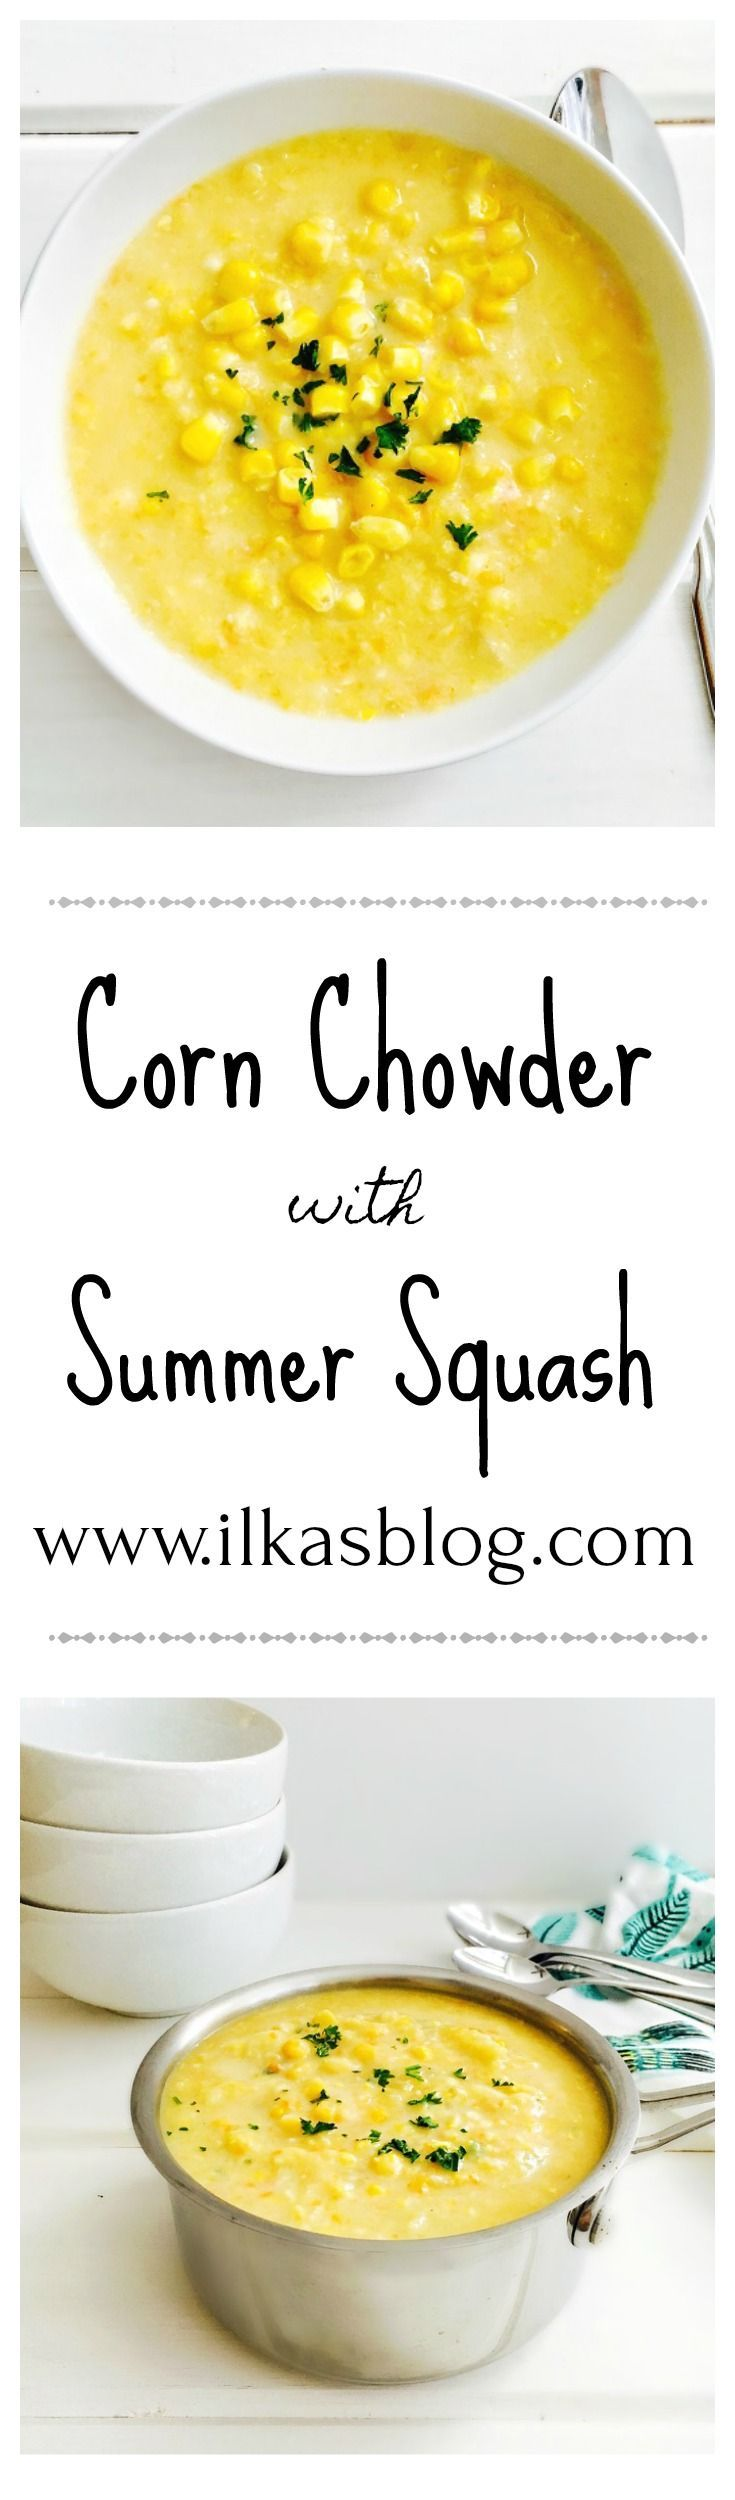 Corn Chowder with Yellow Summer Squash - a great American Classic and perfect for Summer! gluten-free and vegan option. Simply delicious!